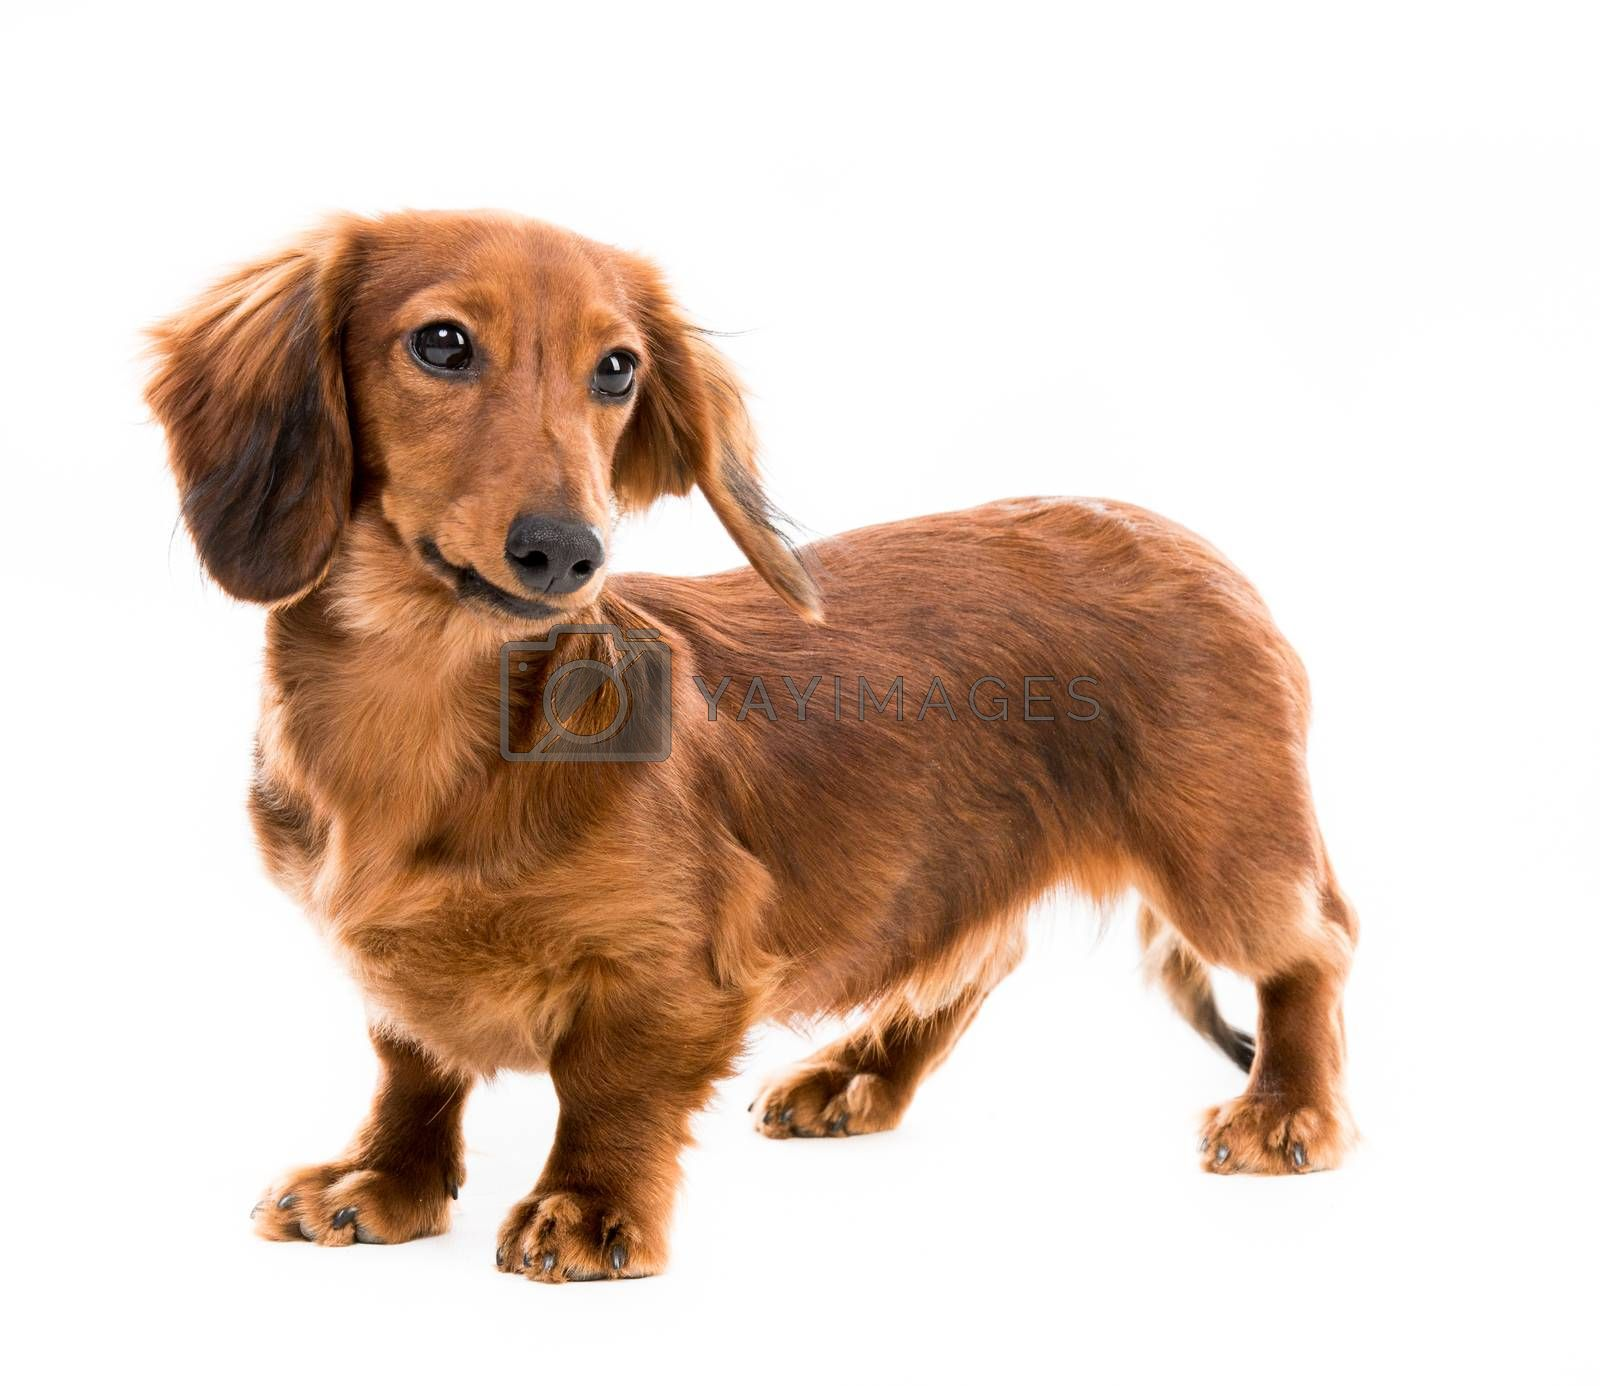 Royalty free image of red dog breed dachshund by GekaSkr